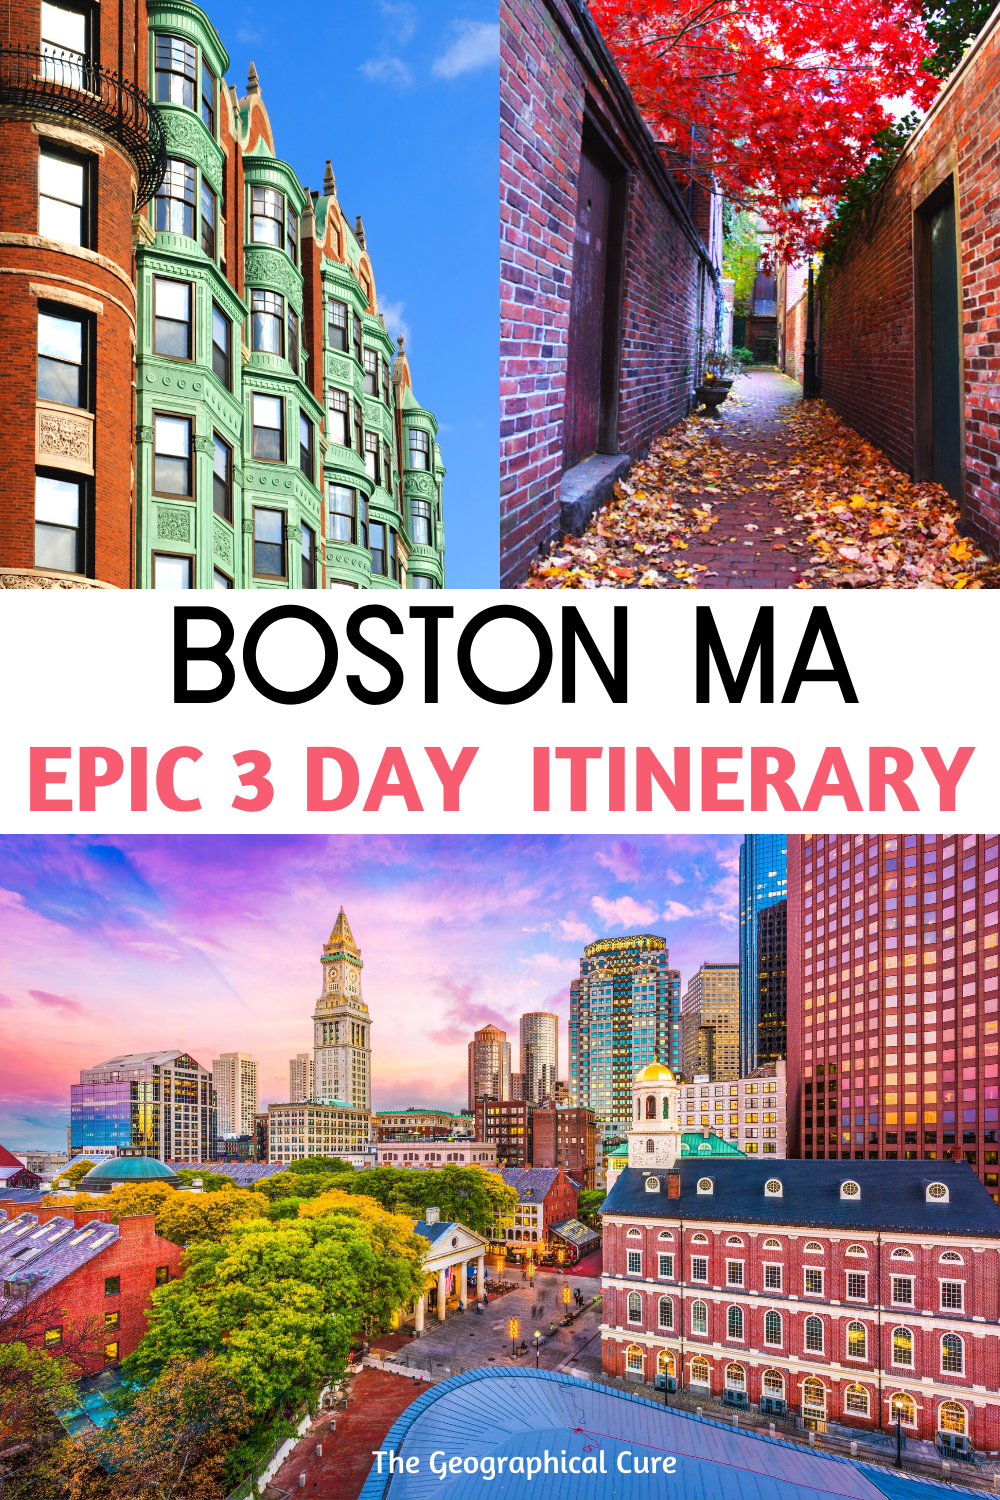 Epic 3 Day itinerary for Boston